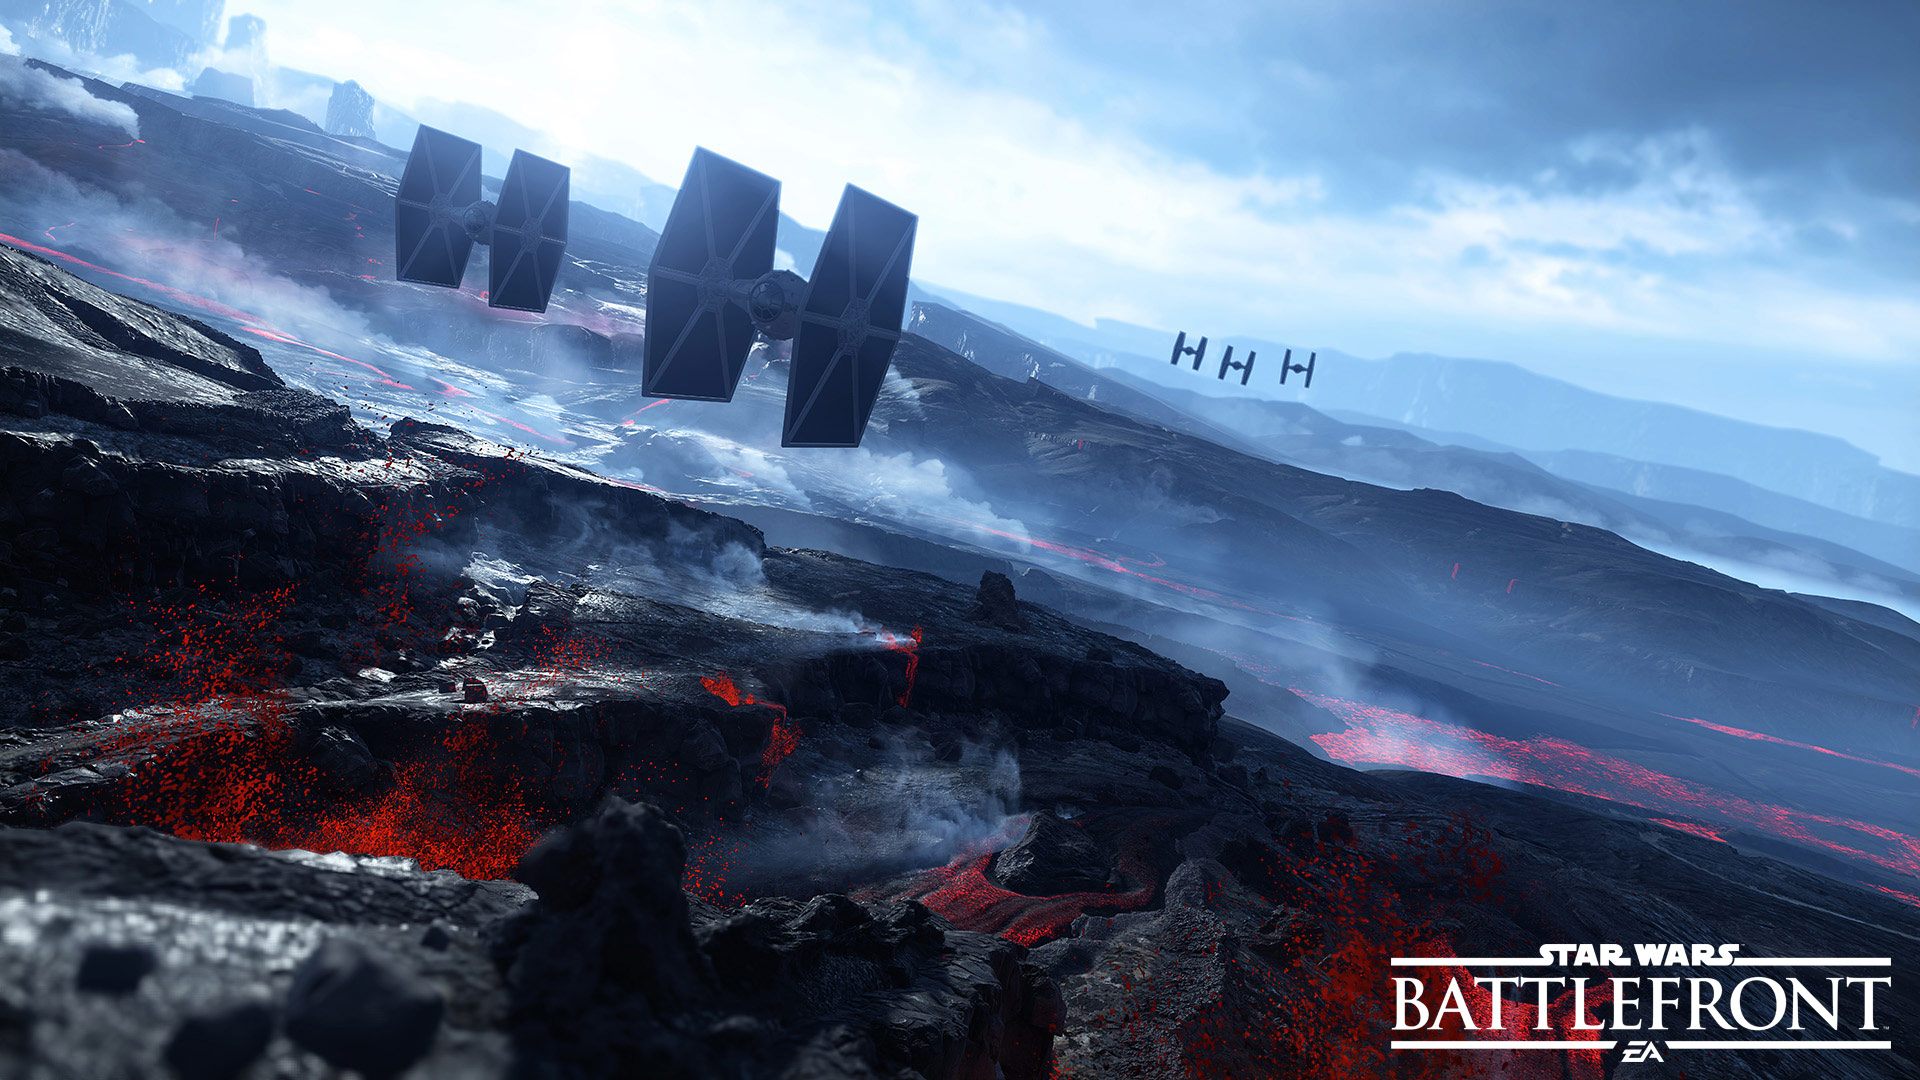 Gamescom 2015 Fighter Squadron Gameplay From Star Wars Battlefront VG247